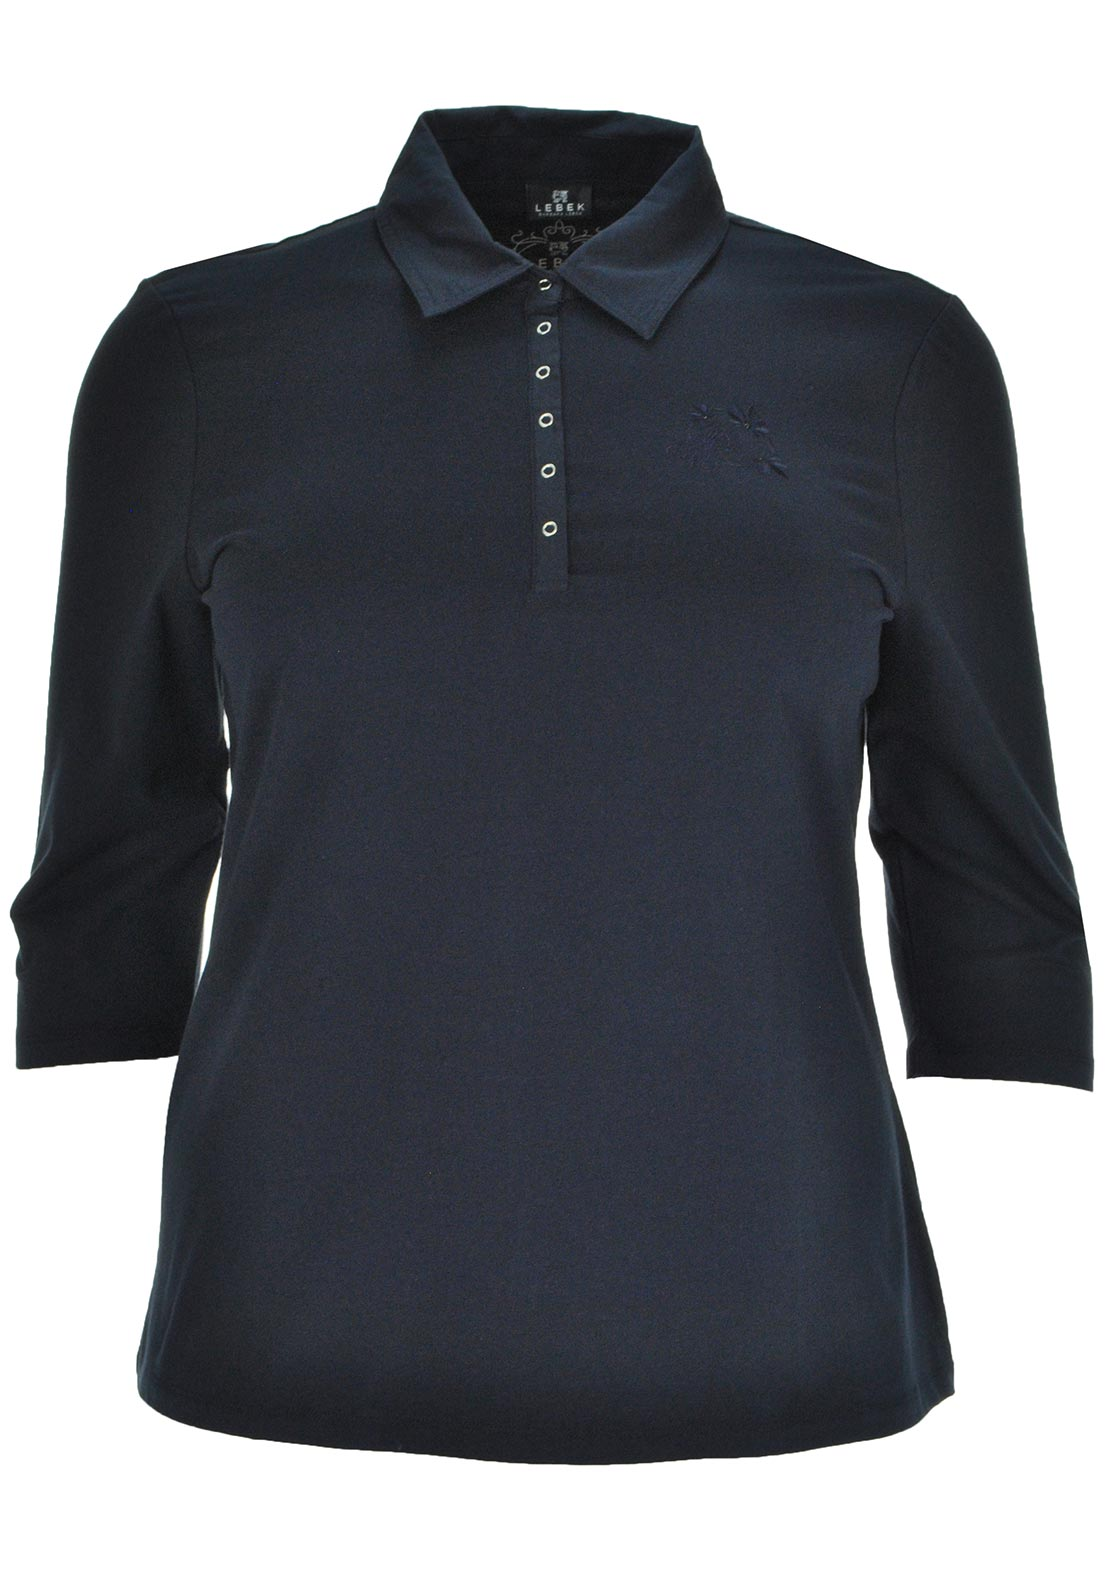 Lebek Cropped Sleeve Polo Shirt, Navy